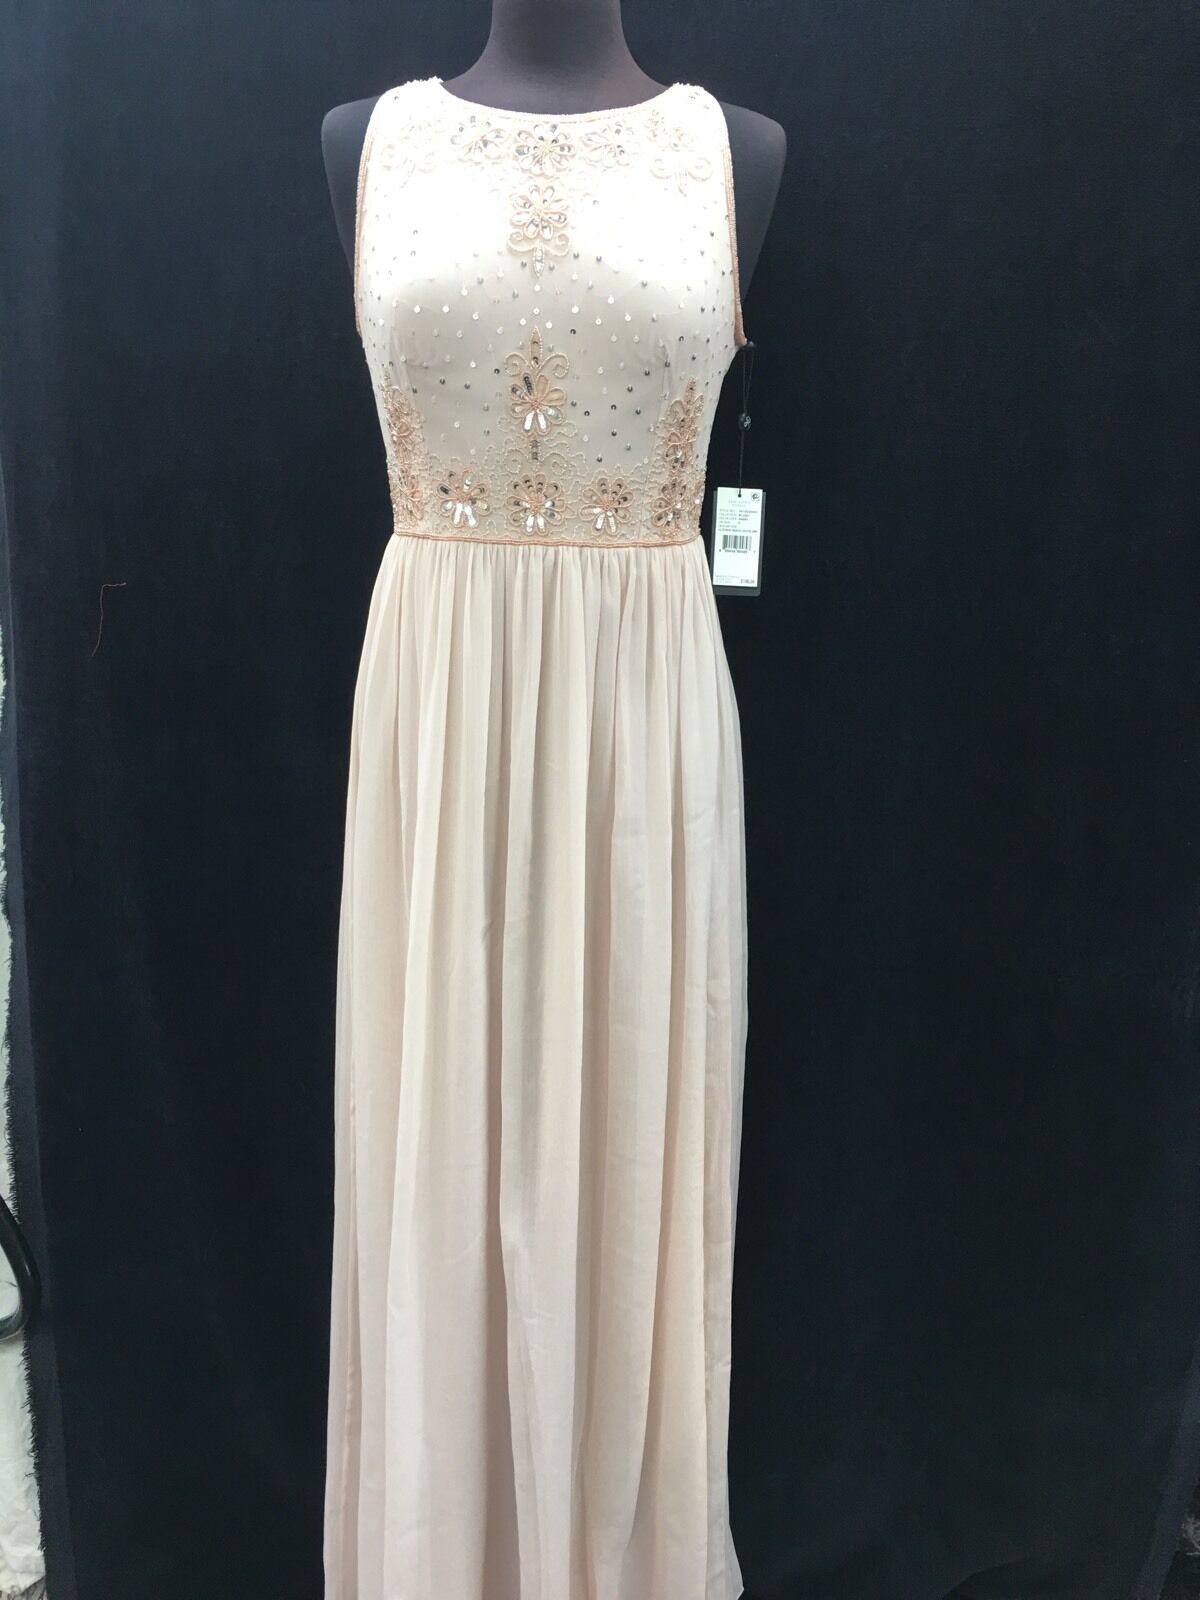 ADRIANNA PAPELL LONG GOWN NEW WITH TAG RETAIL blueSH SIZE 2